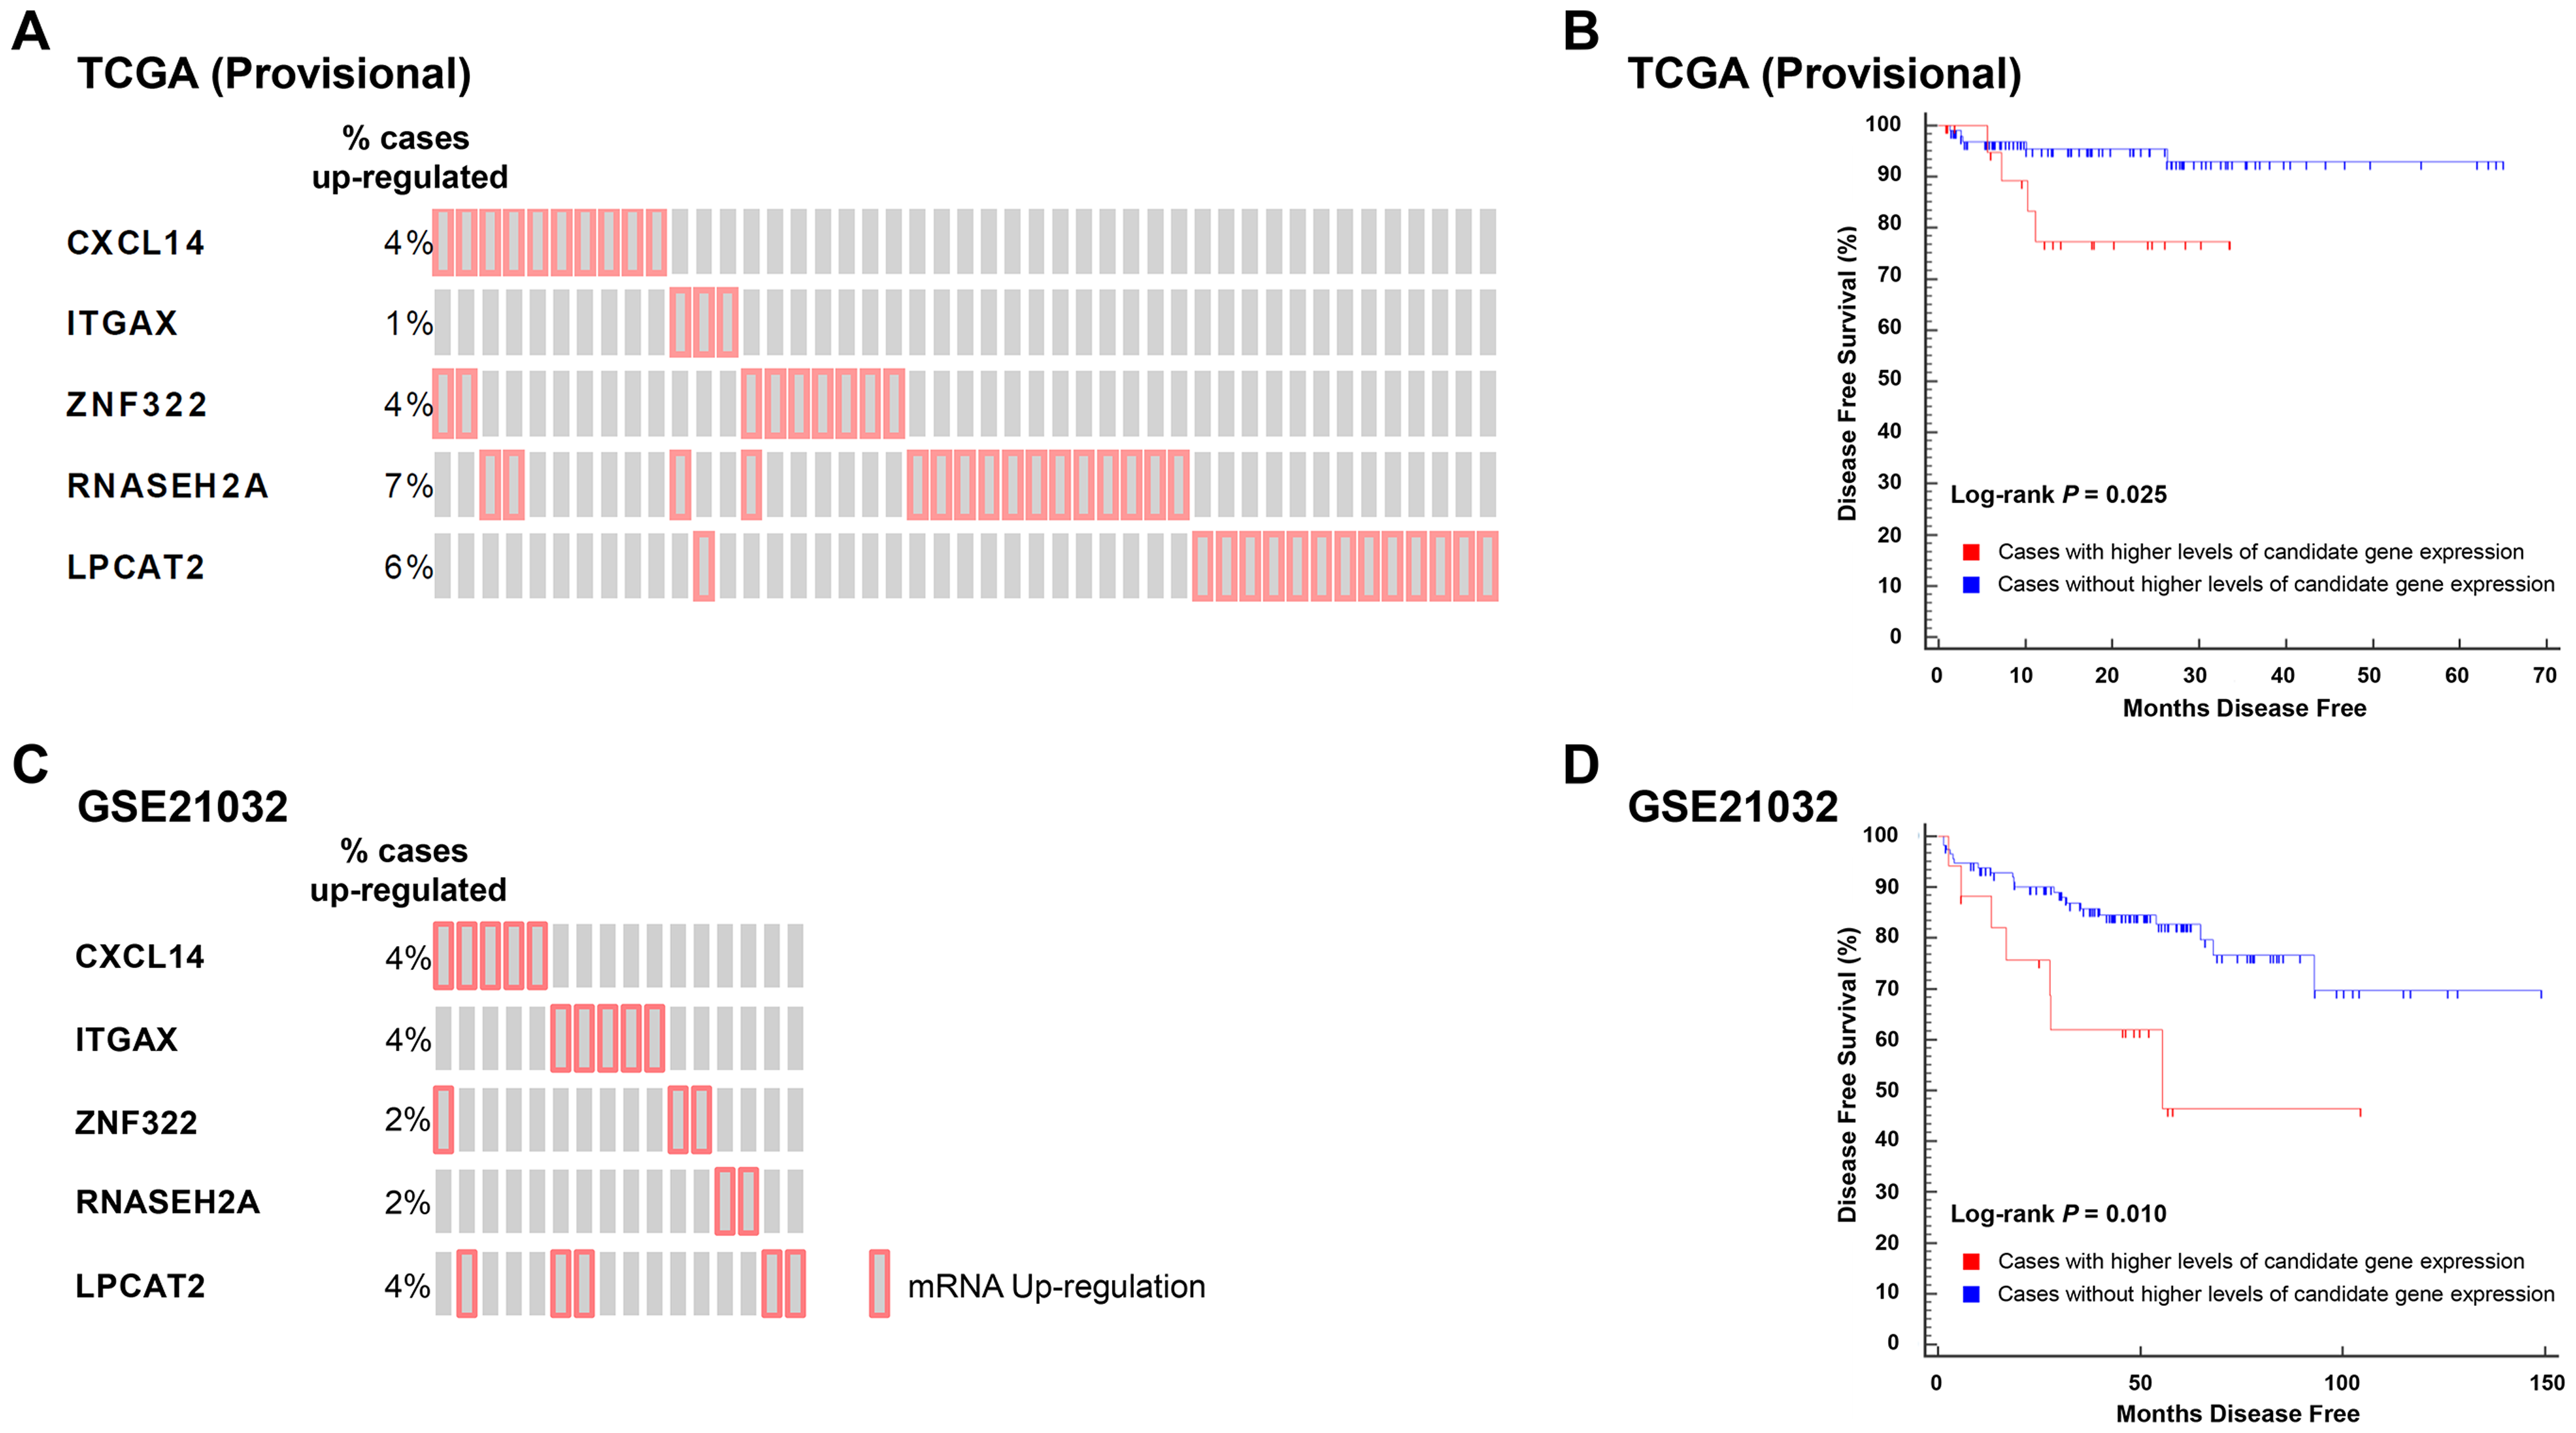 Higher levels of five QTL candidate genes are associated with poor DFS in TCGA (Provisional) and GSE21032 prostate cancer gene expression datasets.